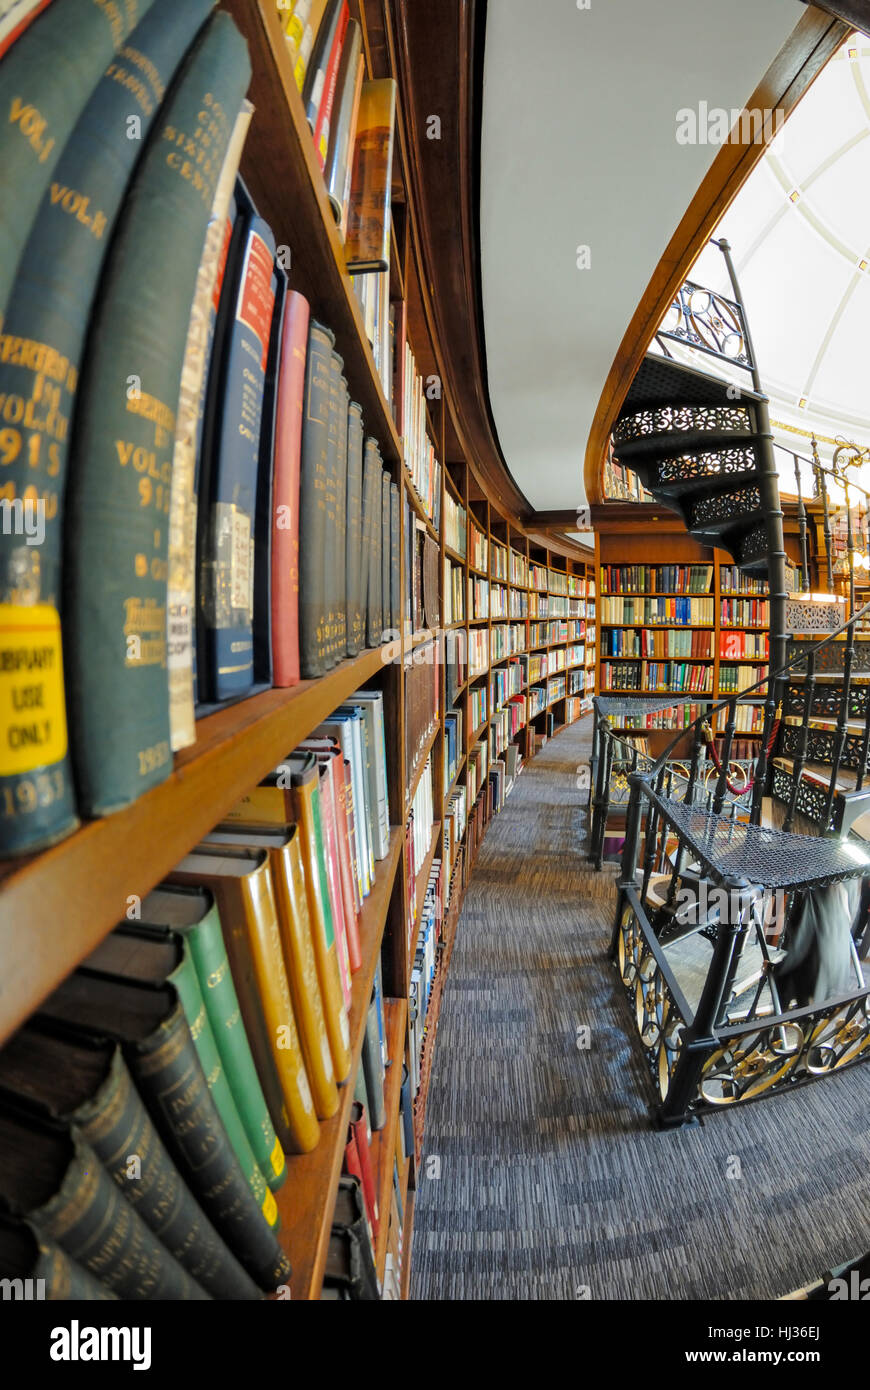 Picton Reading Room, part of Liverpool Central Library. Stock Photo